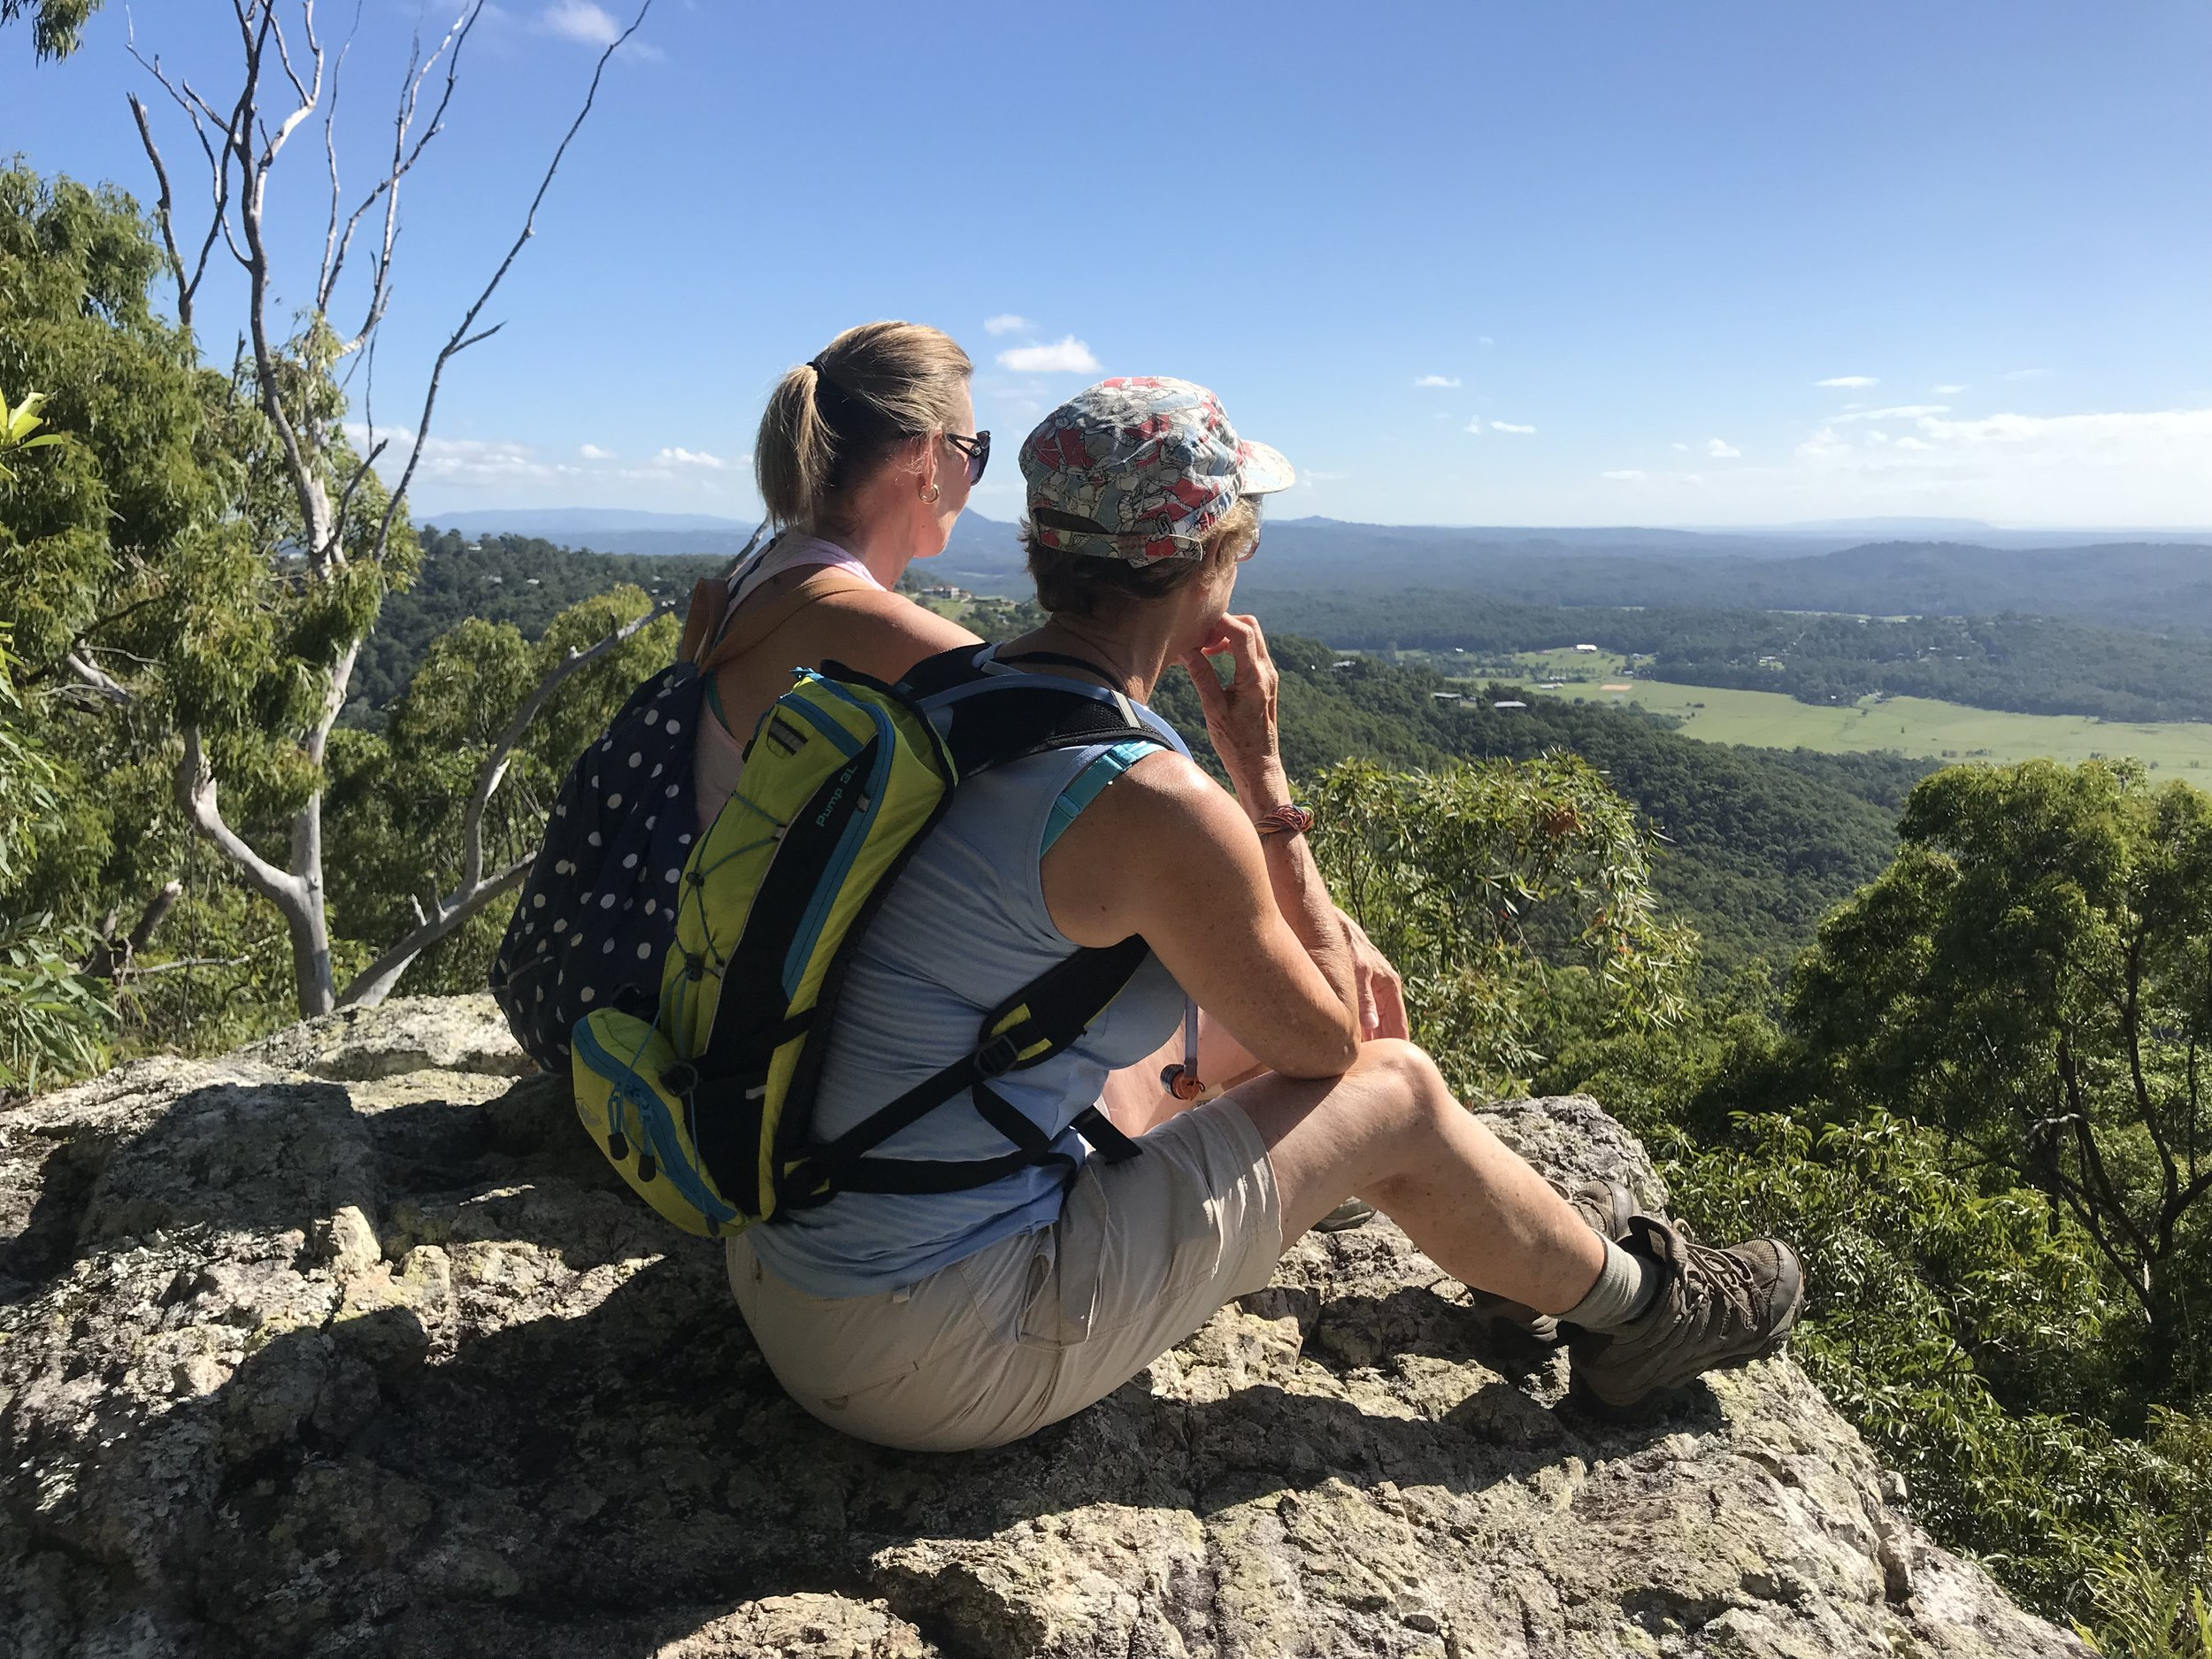 Enjoying the view from lookout on the way up to summit